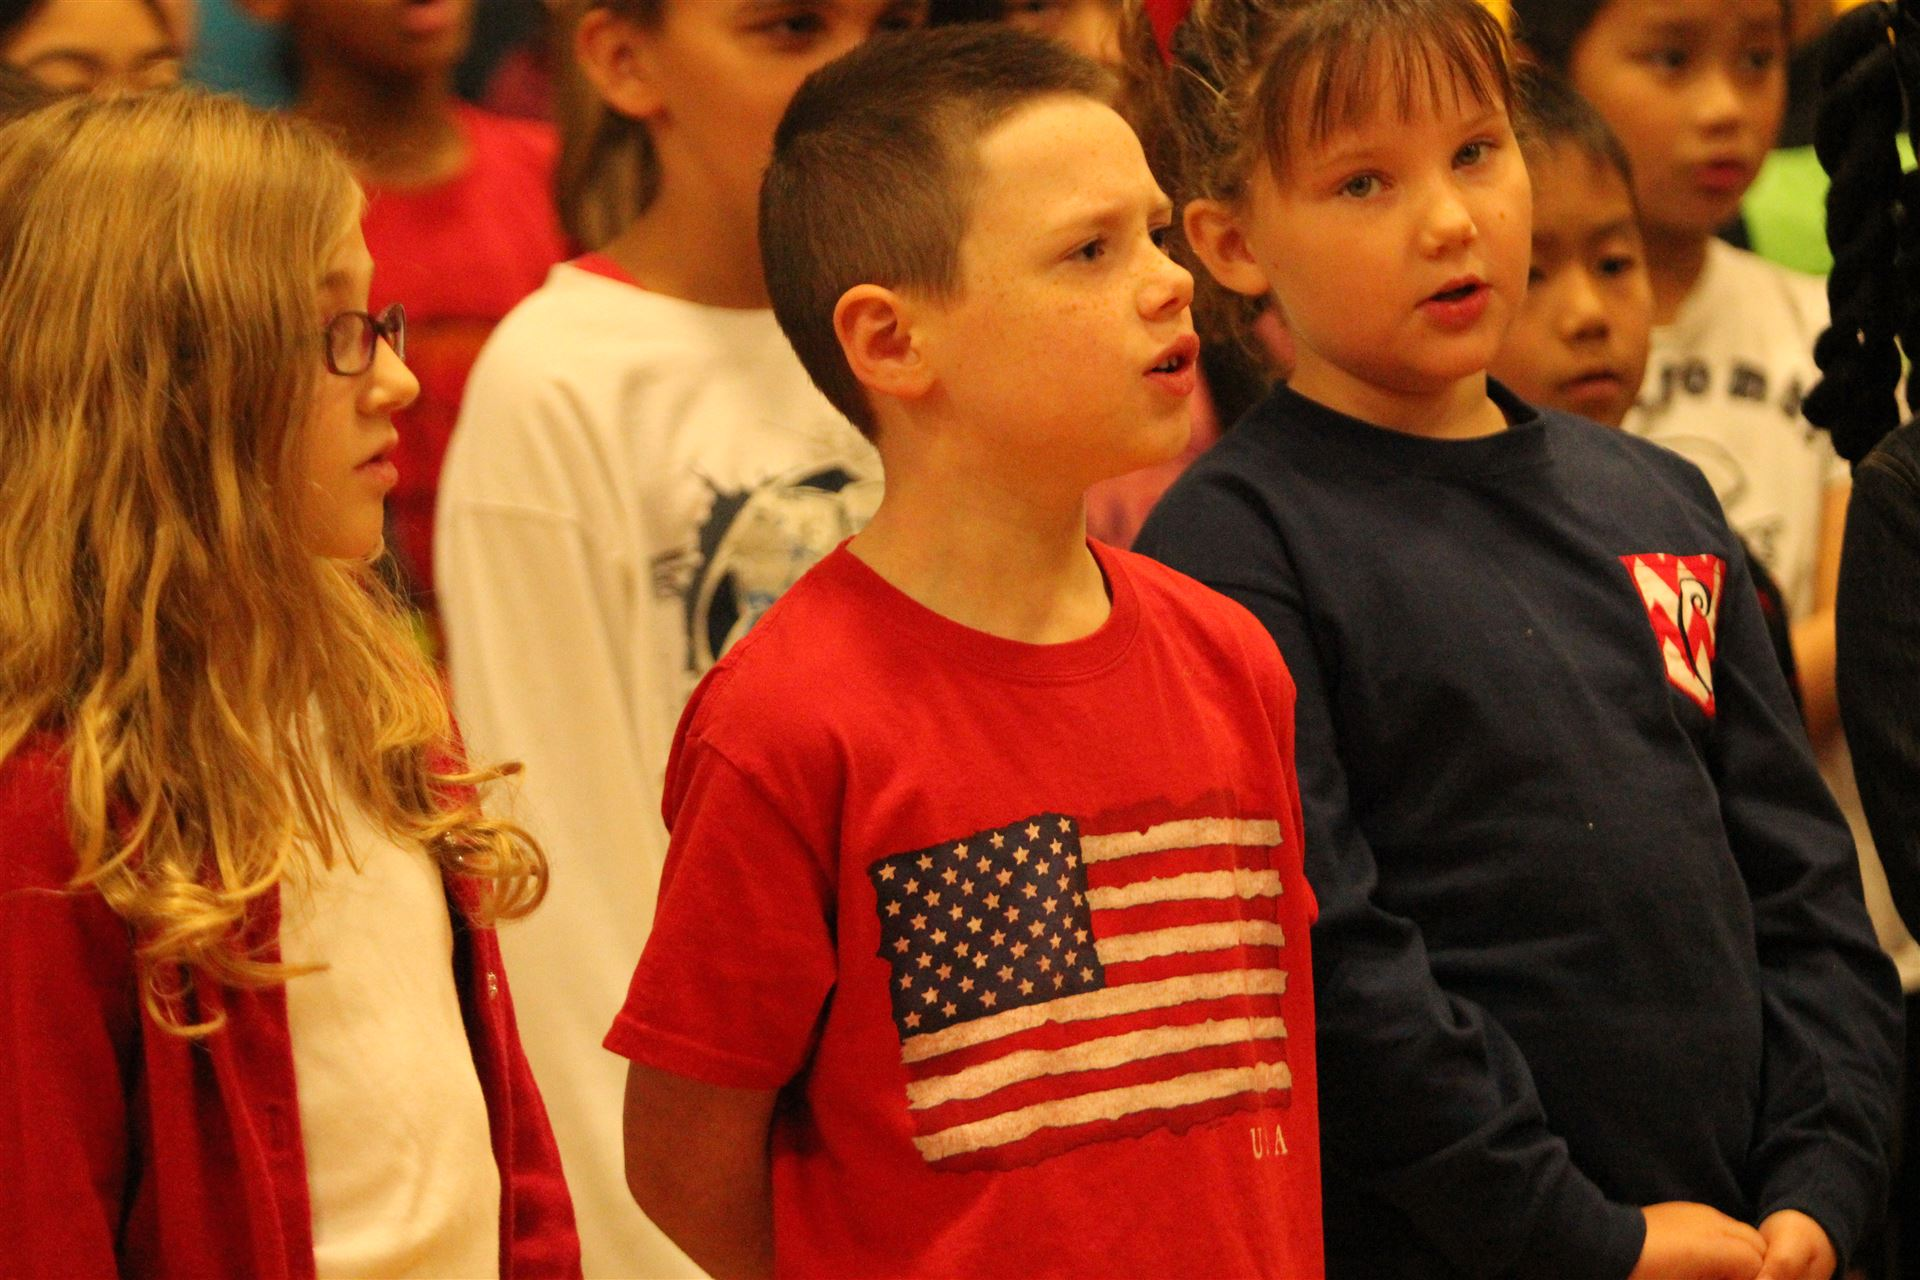 Veterans Day at Natcher Elementary